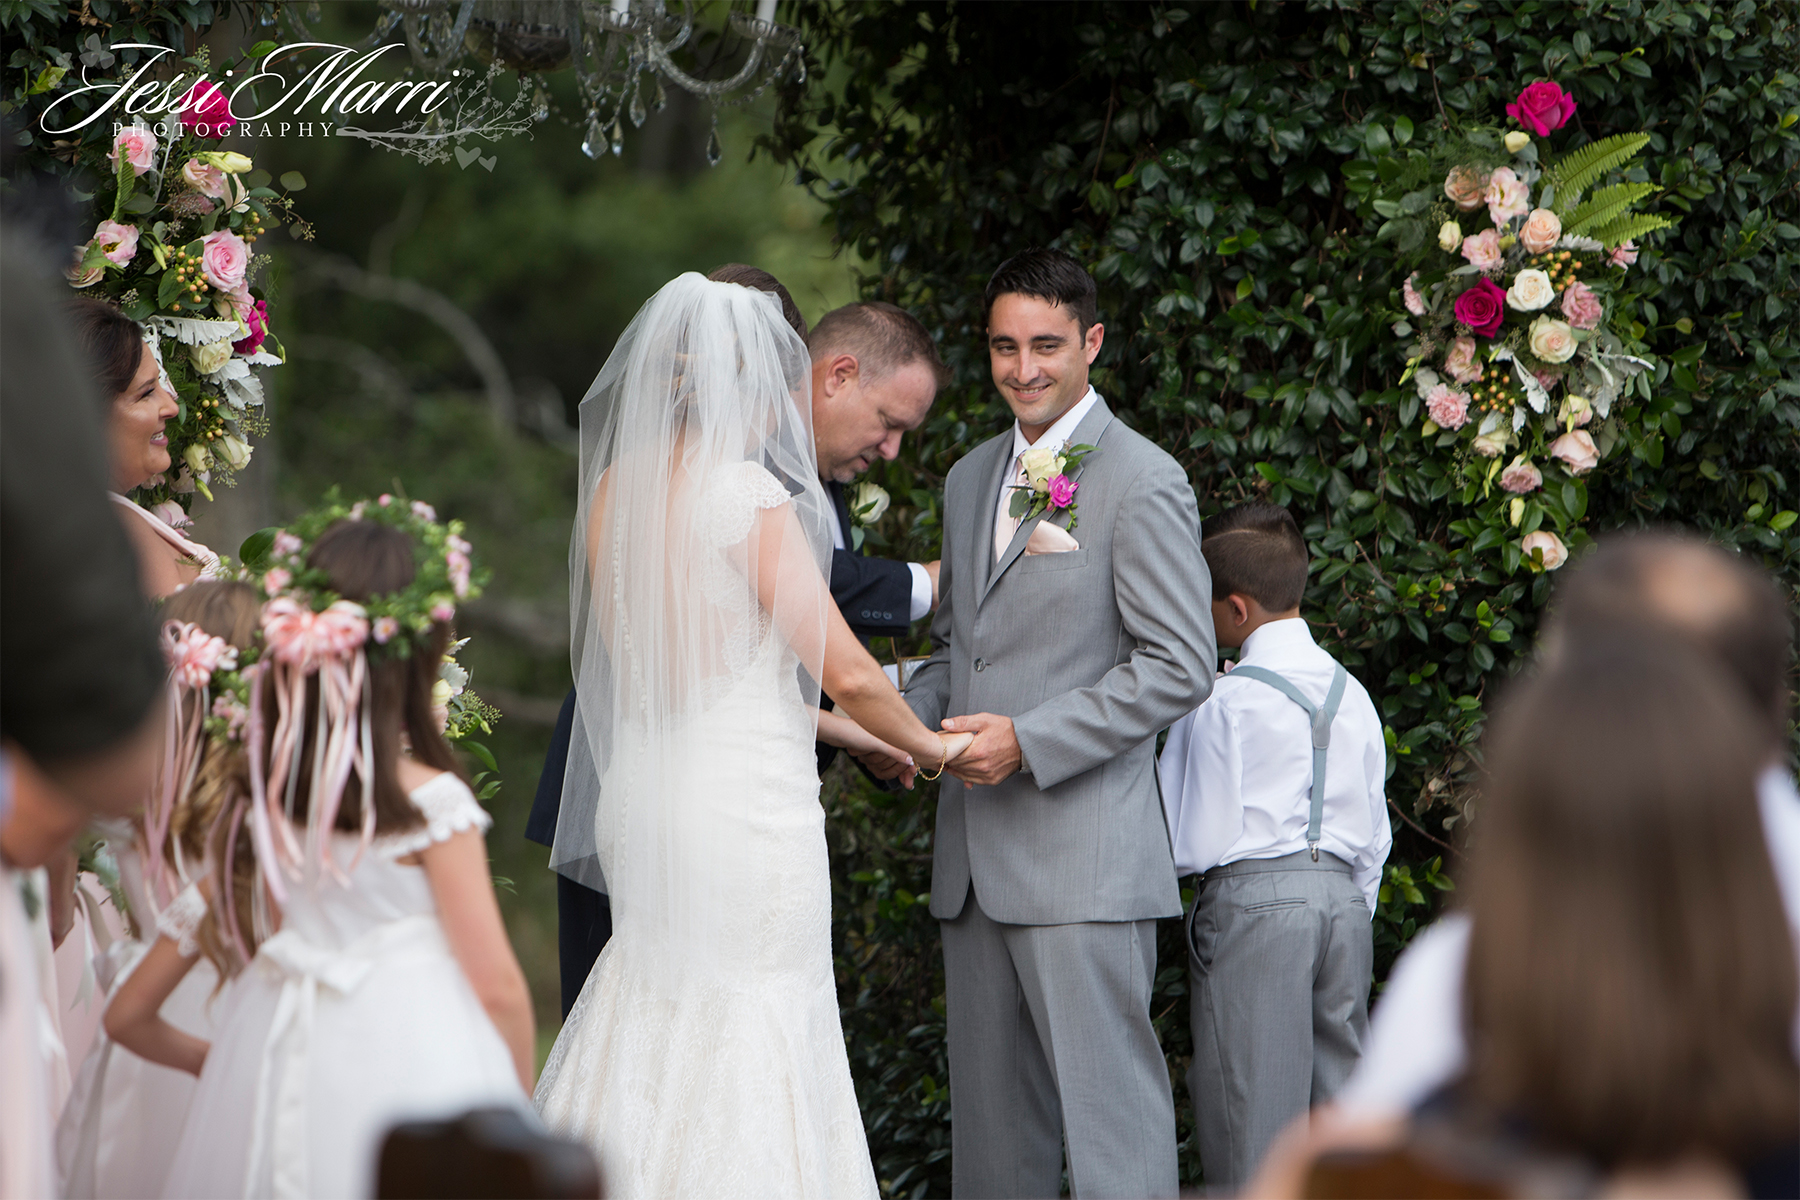 Documenting Your Ceremony With Houston Wedding Photographers